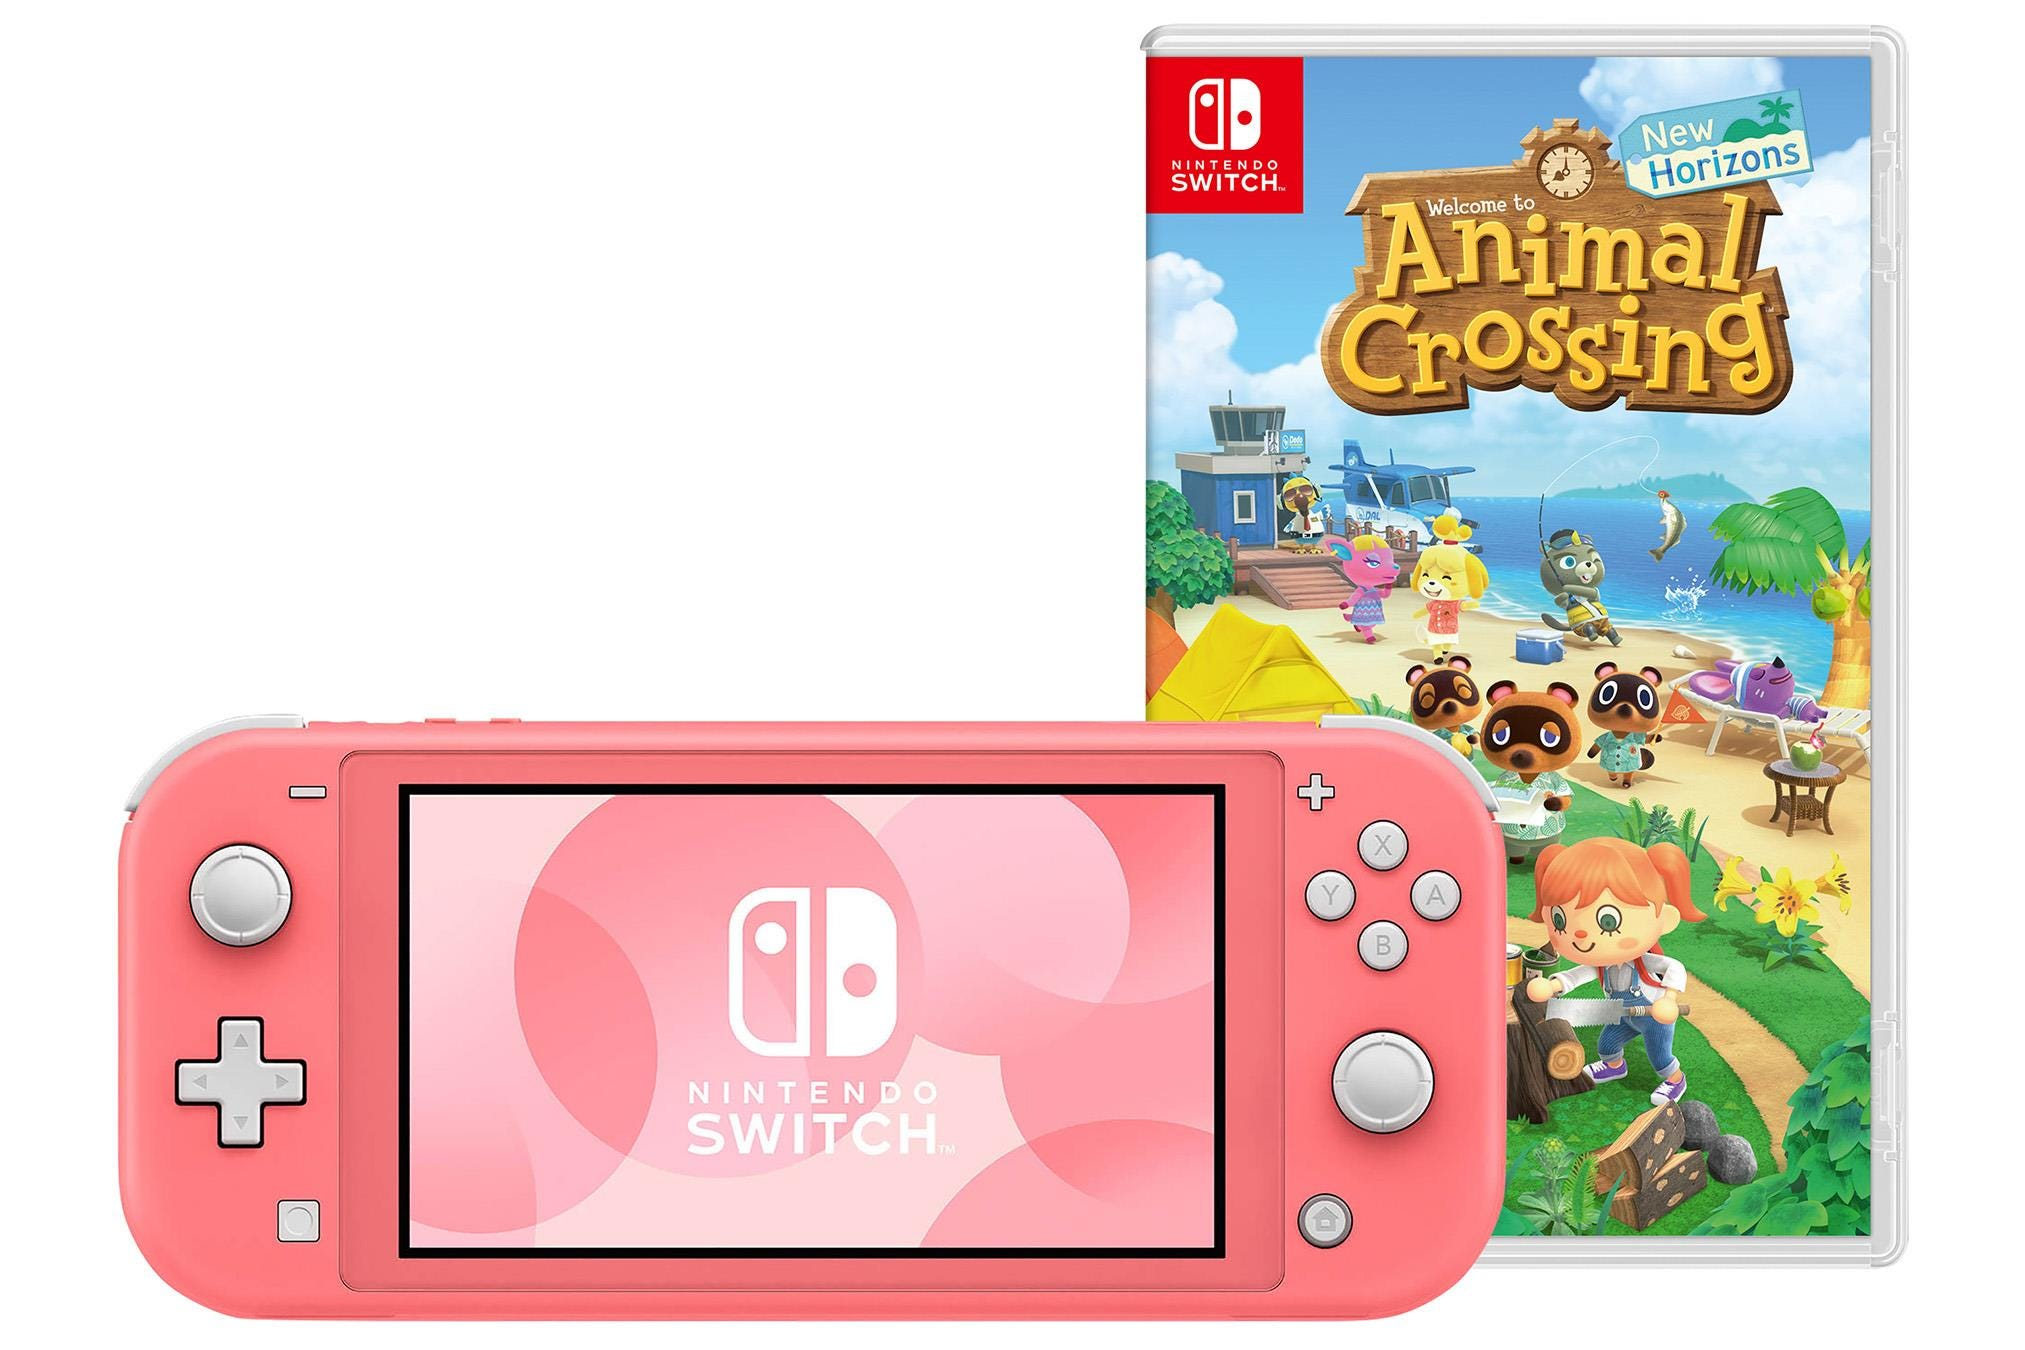 Nintendo Switch Lite Coral Gaming Console inc Animal Crossing Game